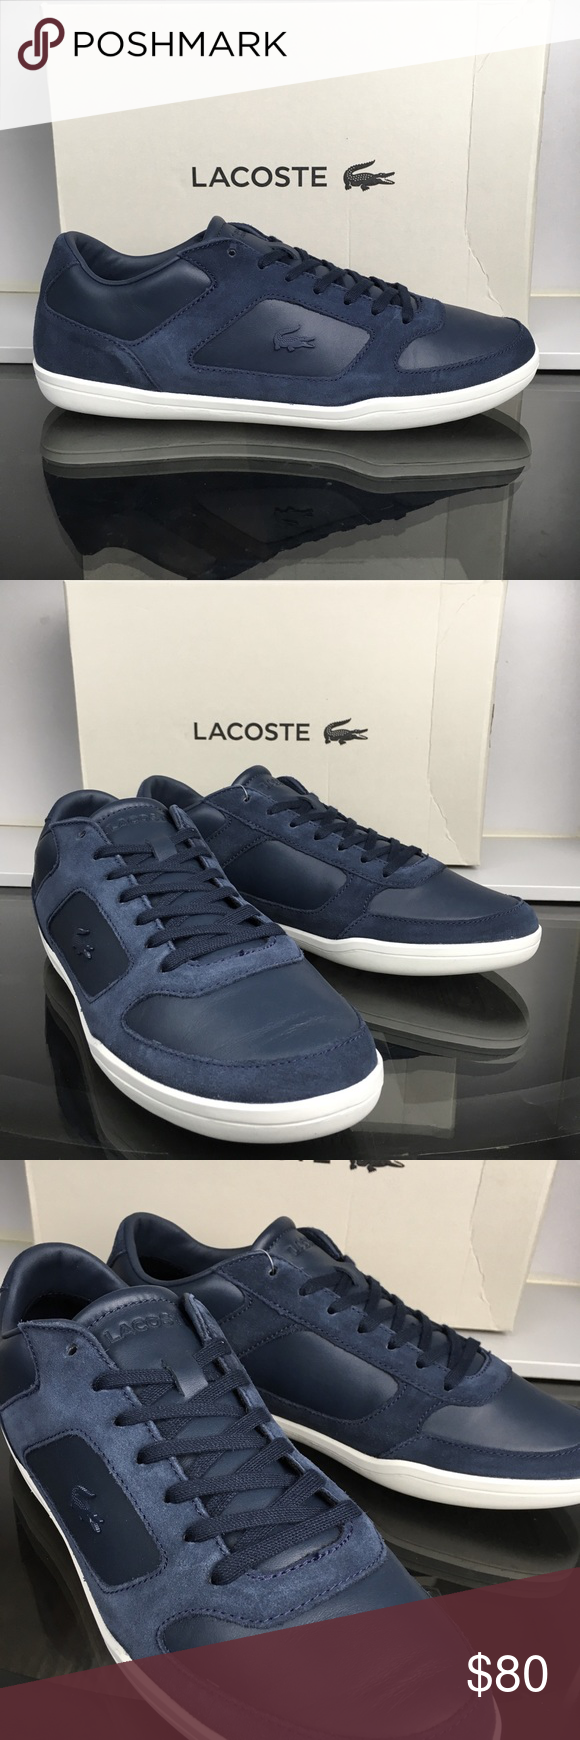 fba20152e5 Lacoste Navy Blue Minimal Men's Brand new and with the original box Lacoste  Shoes Sneakers